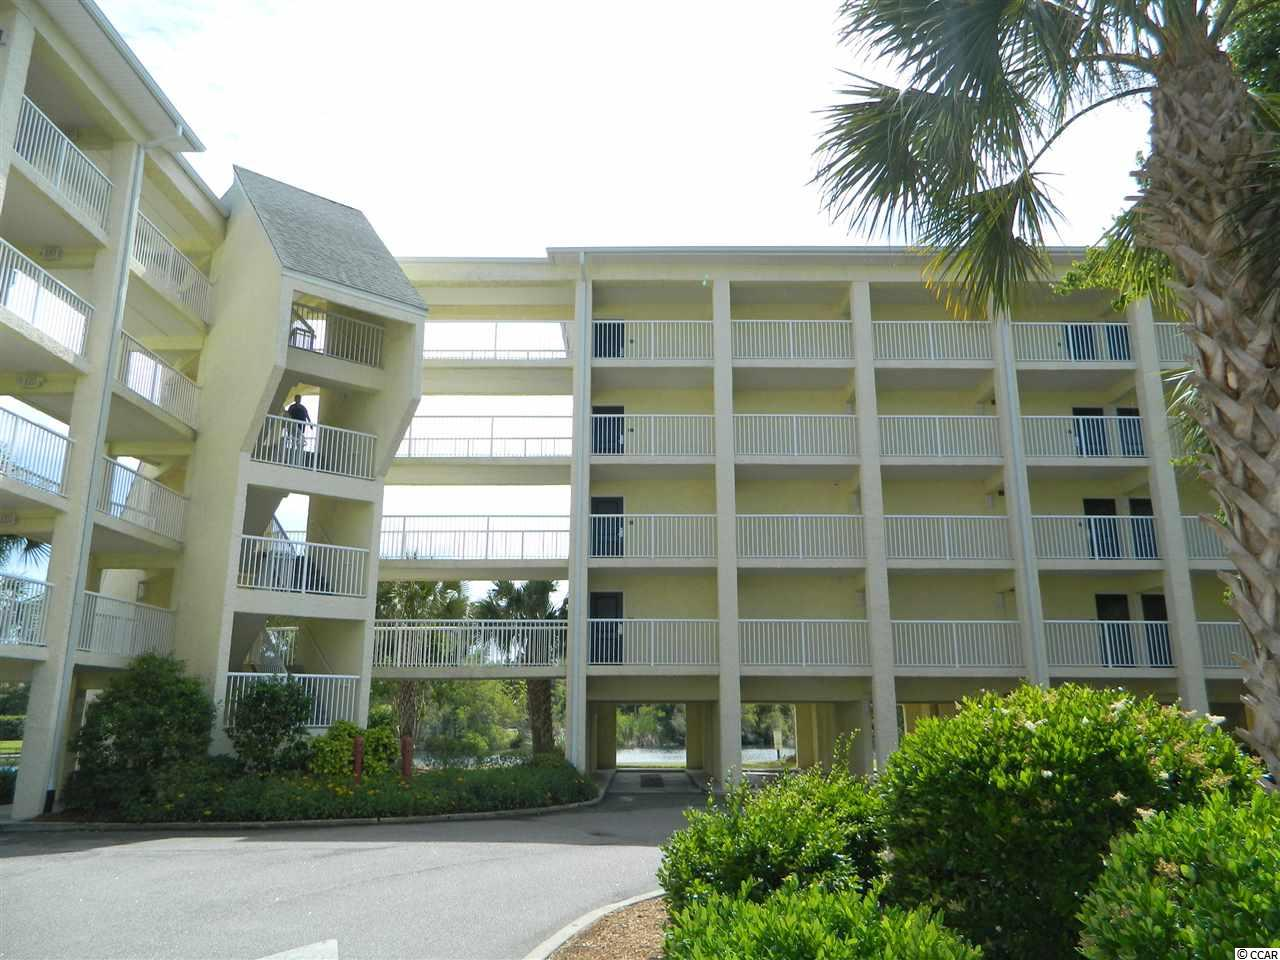 Enjoy the beautiful serene lake view from your 4th floor, open end balcony in this Summerhouse condo! Great opportunity for a vacation retreat or investment property with rentals.The recently updated interior of this 1 bedroom, 1 full tiled bath condo is beautifully decorated. It has a fully equipped kitchen with granite countertops, full size refrigerator, living room with tray ceiling, crown molding, full sleeper sofa and bedroom with 2 queen beds. Elevator and laundry facilities on site.Amenities include a large outdoor pool with lazy river, hot tub/spa and children's area adjacent to building. Walk or take the complimentary shuttle to private beach access at Litchfield by the Sea with restrooms and large decks. Resort amenities include tennis court, walking/biking trails, fishing and crabbing docks, kayak launch area. Shopping, dining and golf nearby. Building totally renovated in 2008. New HVAC installed in 2014.